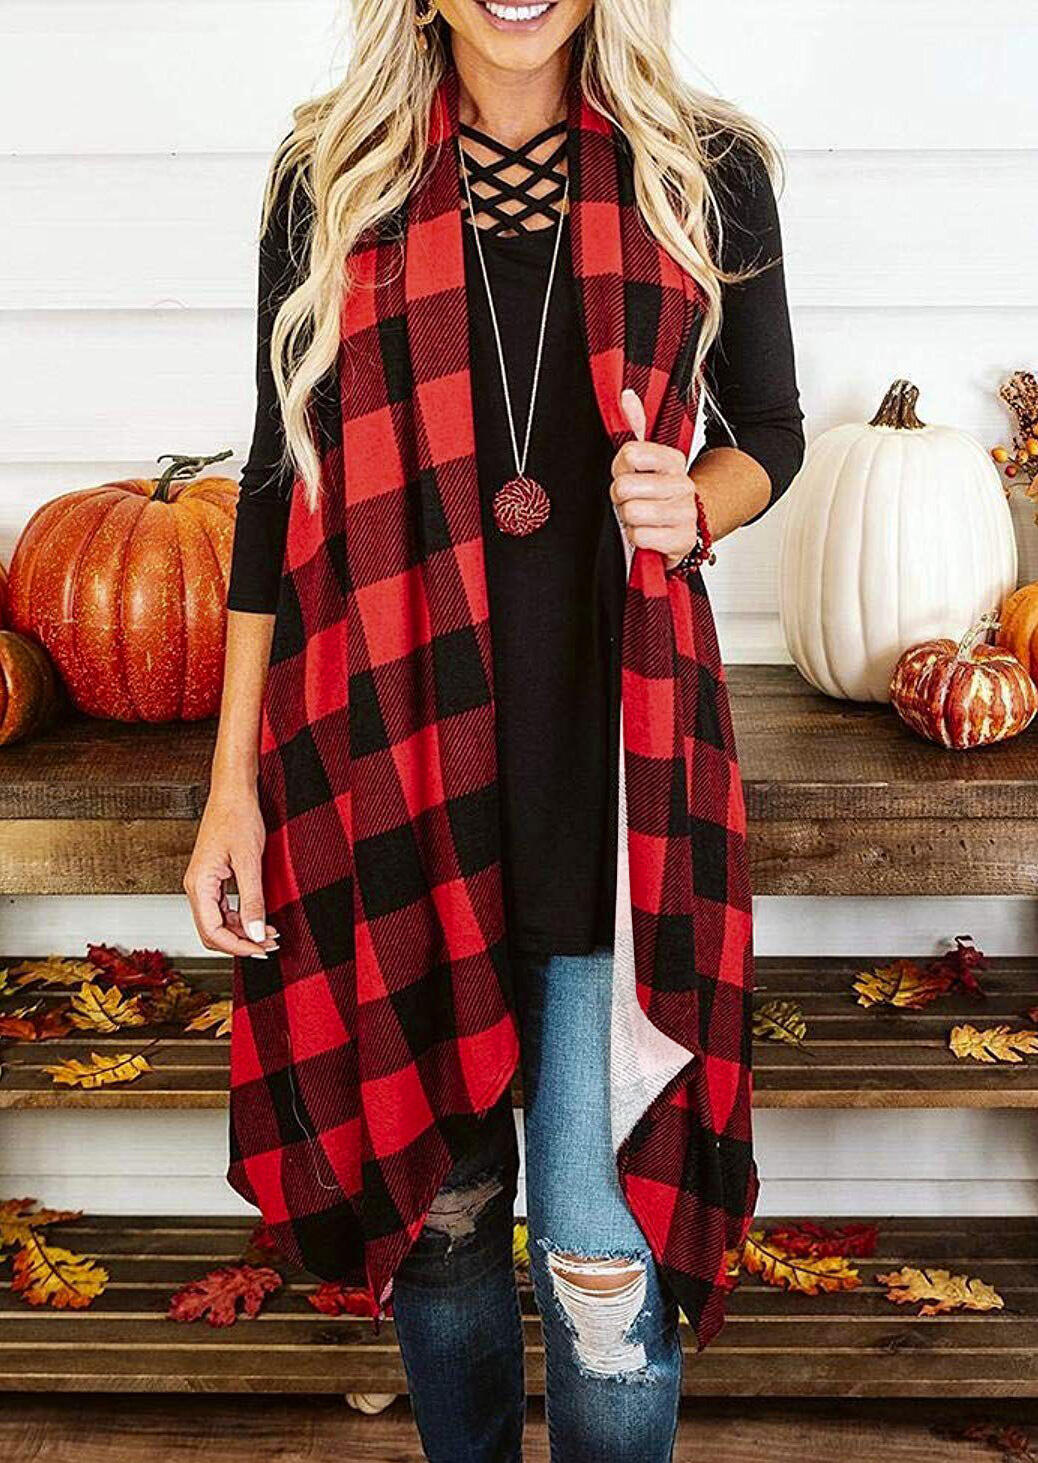 Red Plaid Sleeveless Splicing Asymmetric Cardigan For Women in Red. Size: S,M,L,XL фото